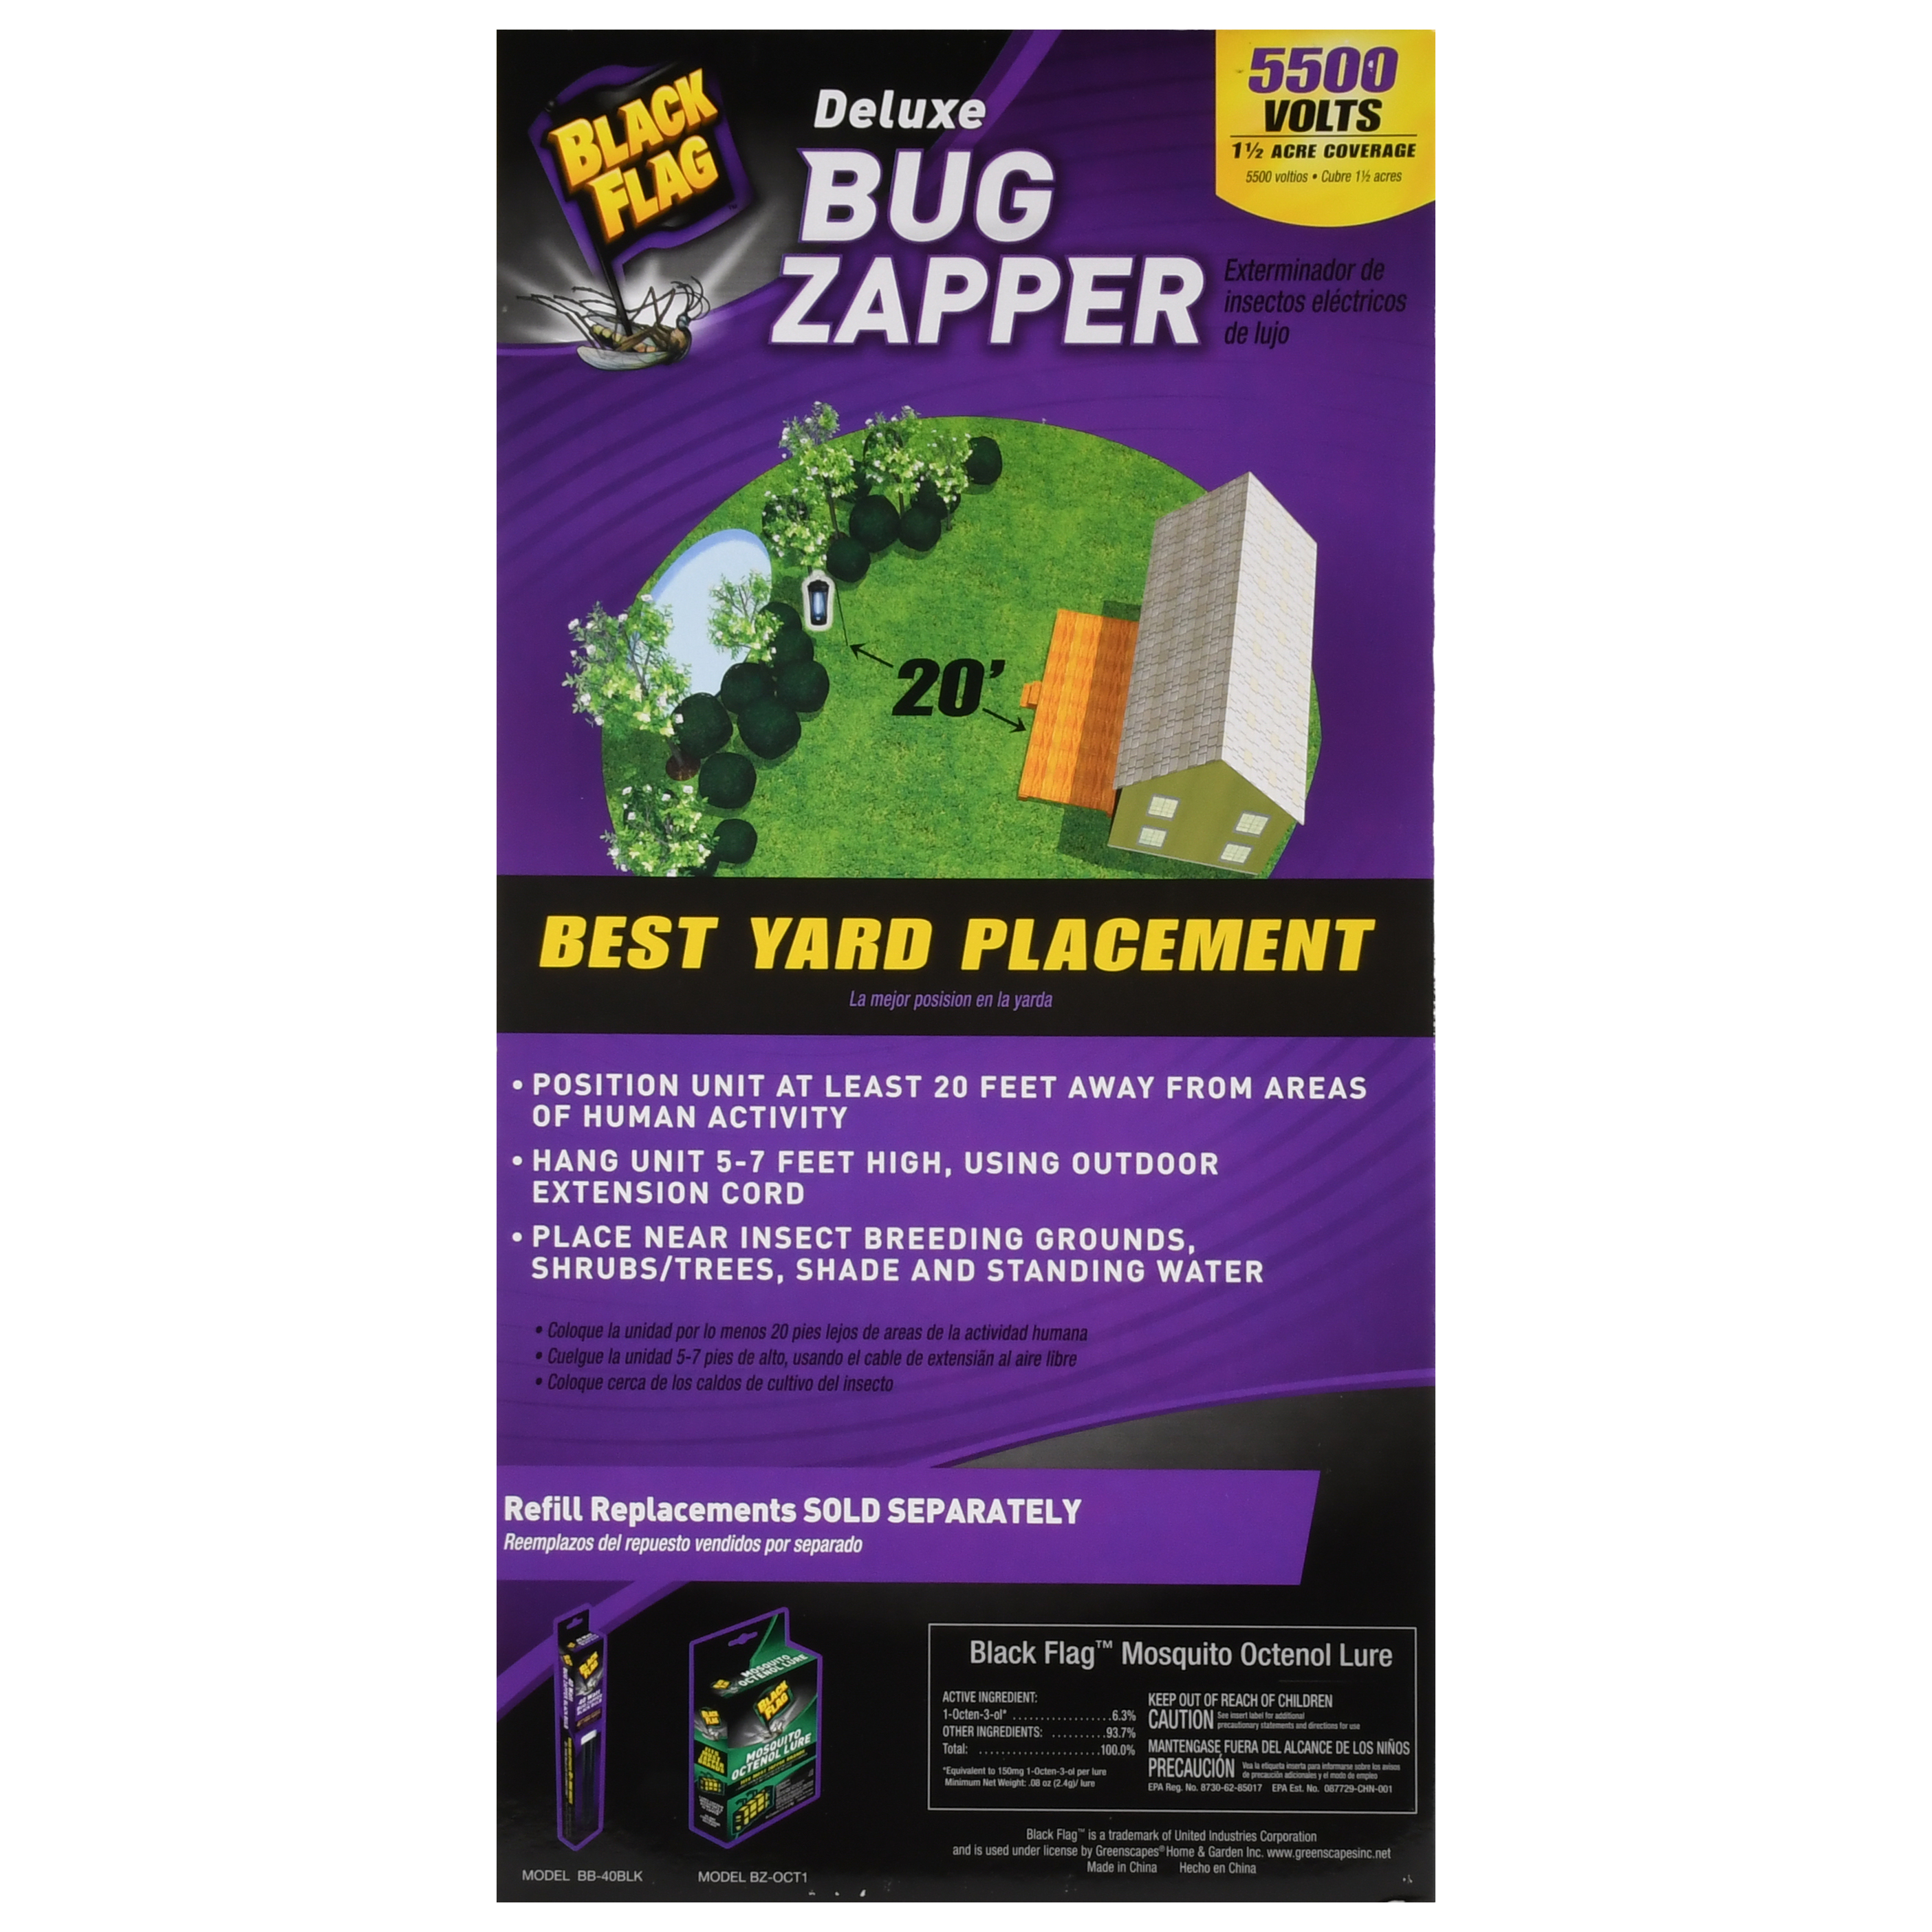 Black Flag 5500 Volt Deluxe Bug Zapper 15 Acre Coverage Mosquito Killer Circuit Is Composed Of The Energy Saving Lamp